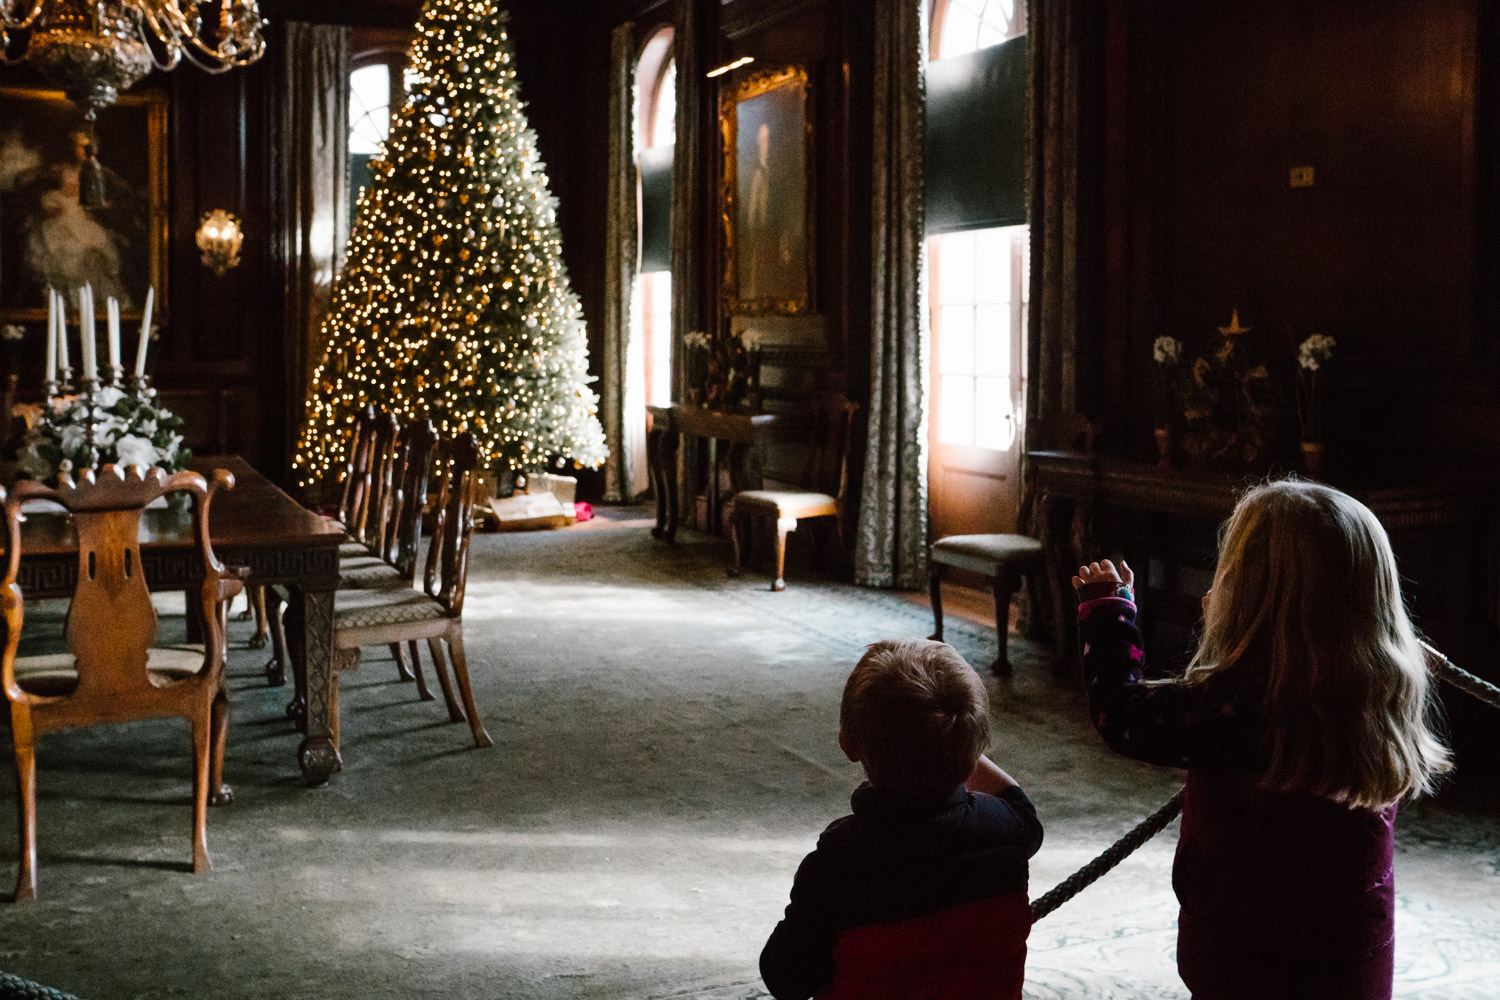 Children look at a Christmas tree at Old Westbury Gardens.